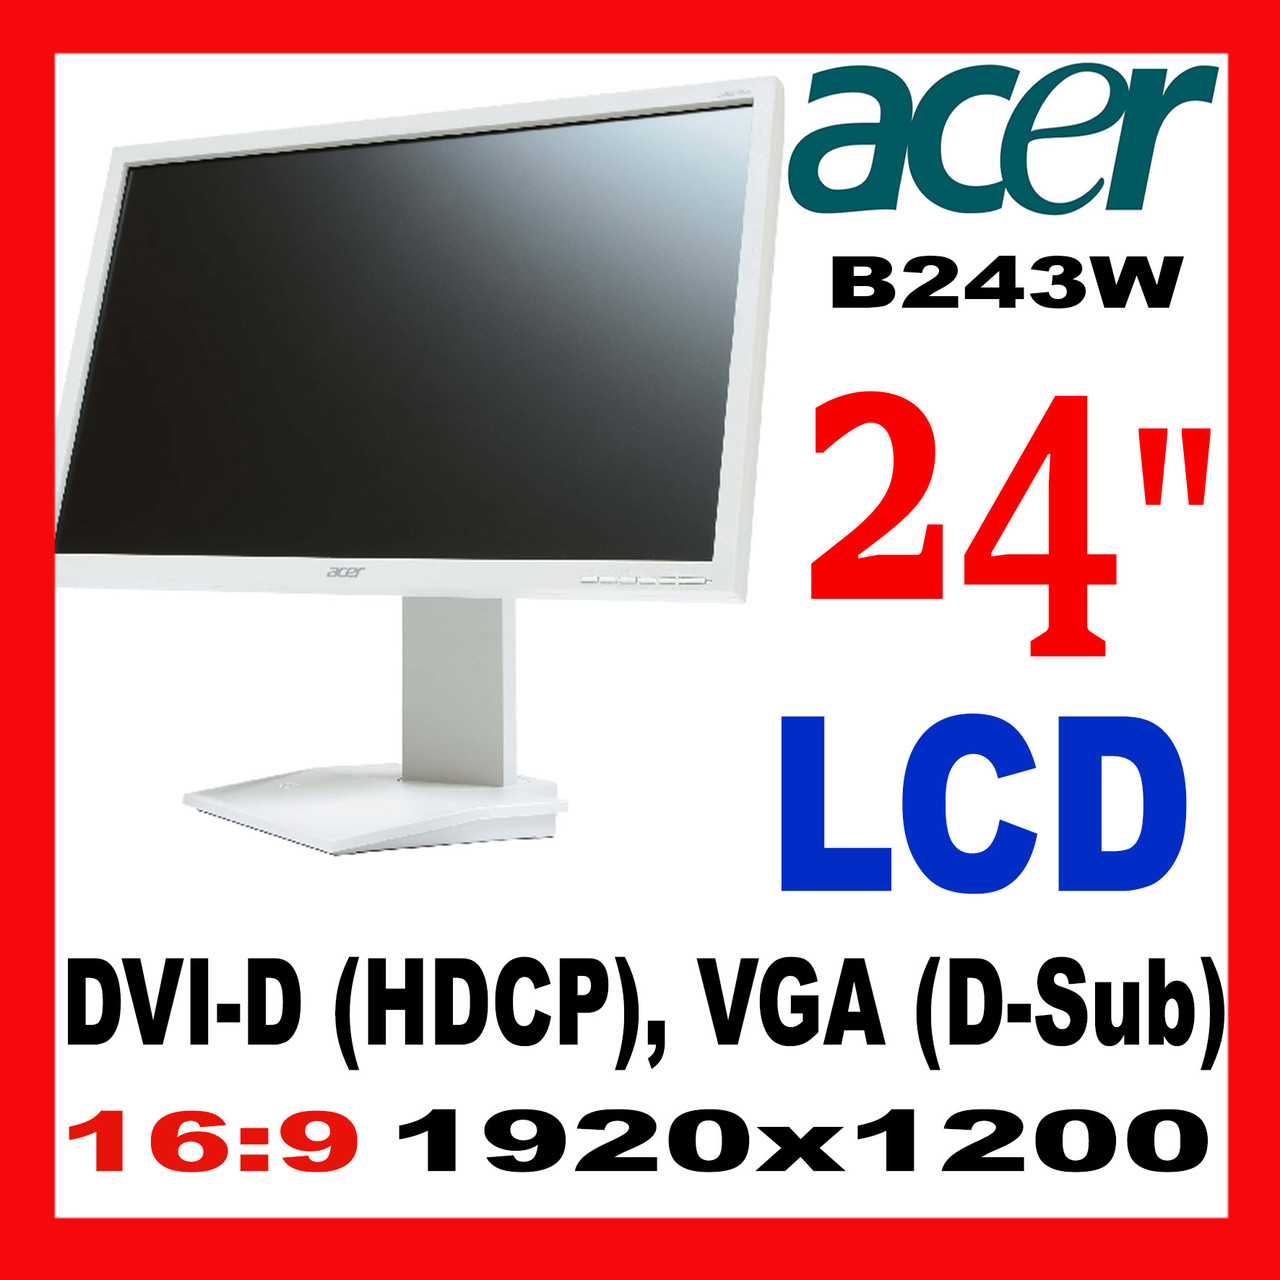 ACER B243W DOWNLOAD DRIVERS